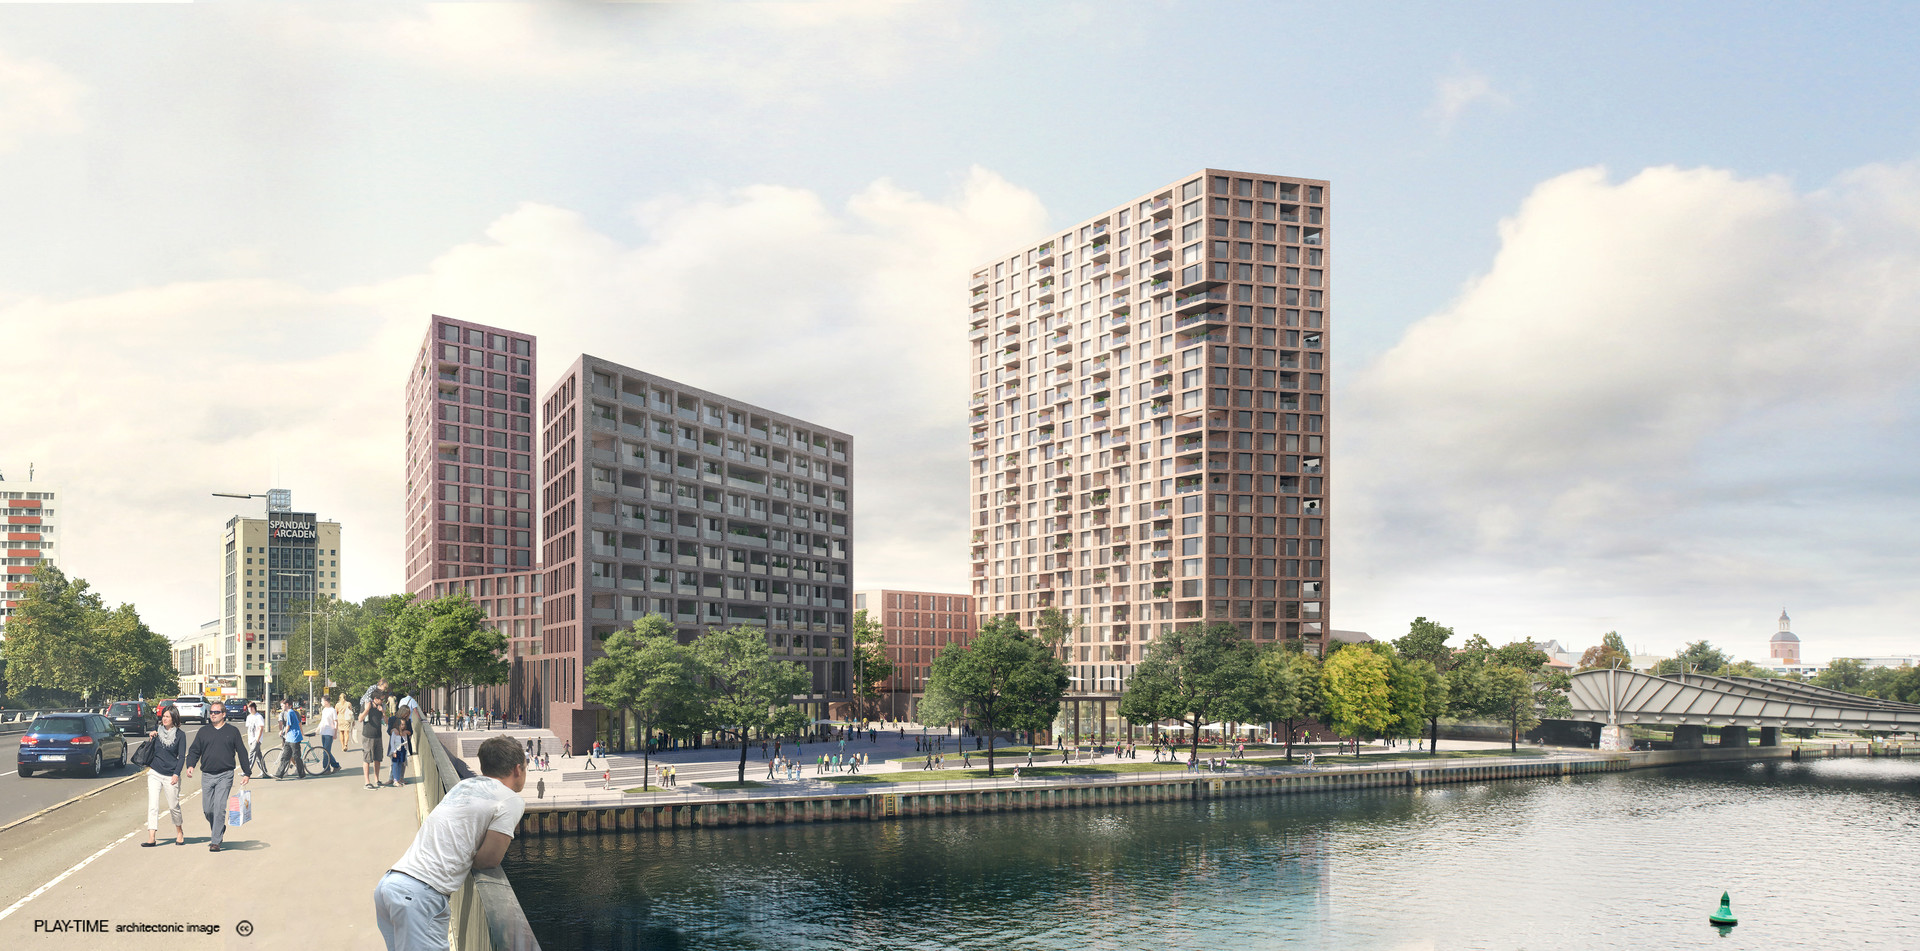 Play time architectonic image astoc arhitects and planners spandauer ufer berlin 1st prize 02